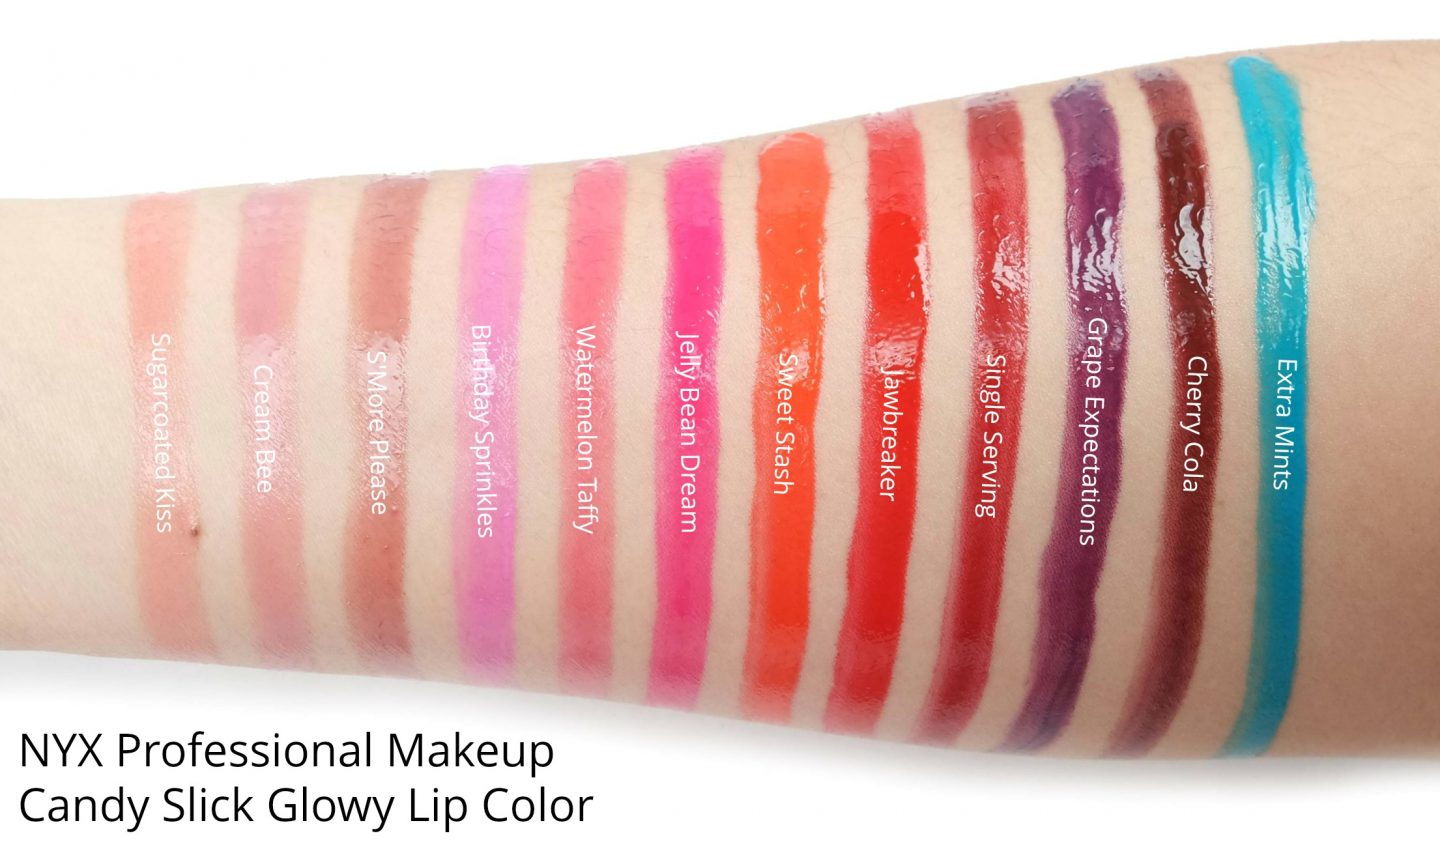 NYX Professional Makeup Candy Slick Glowy Lip Color Swatches